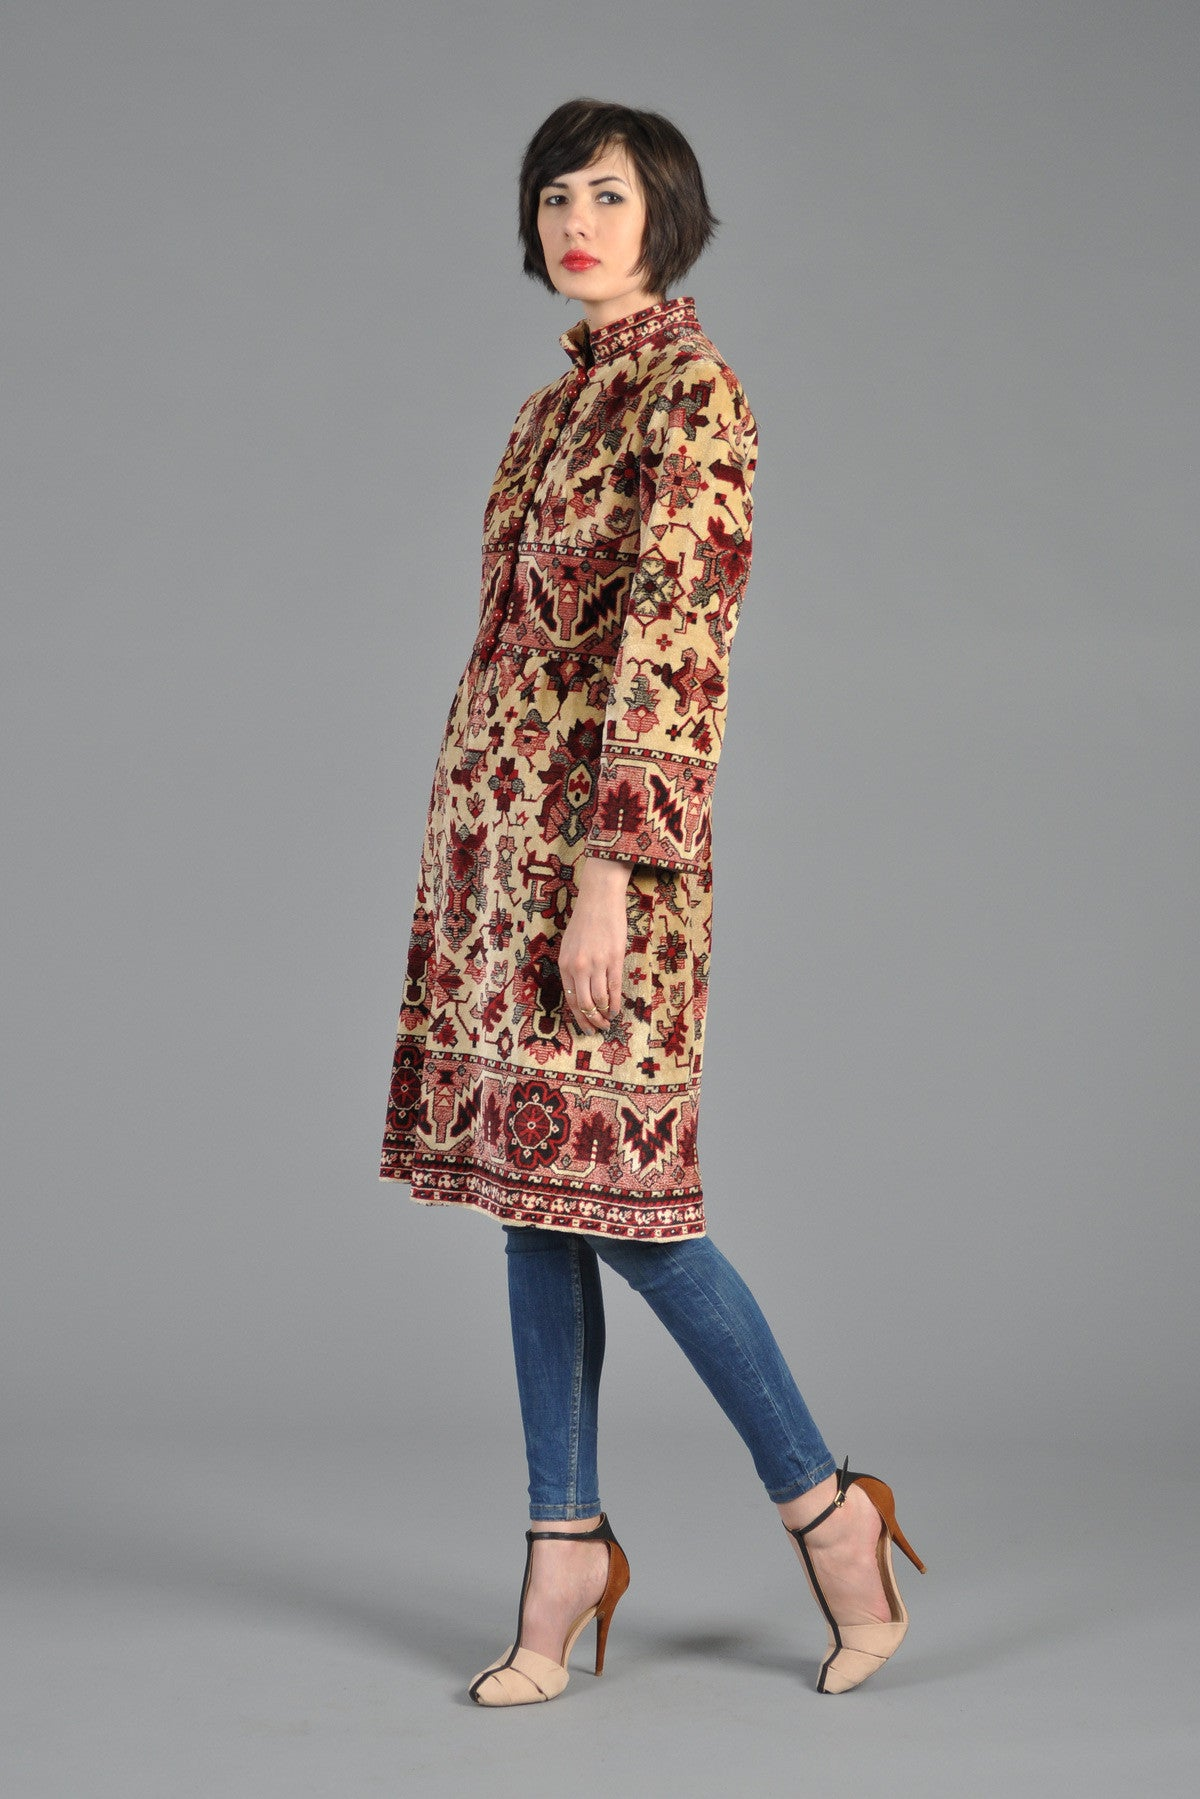 1960s Kilim Indian Inspired Tapestry Coat As Seen On Mad Men